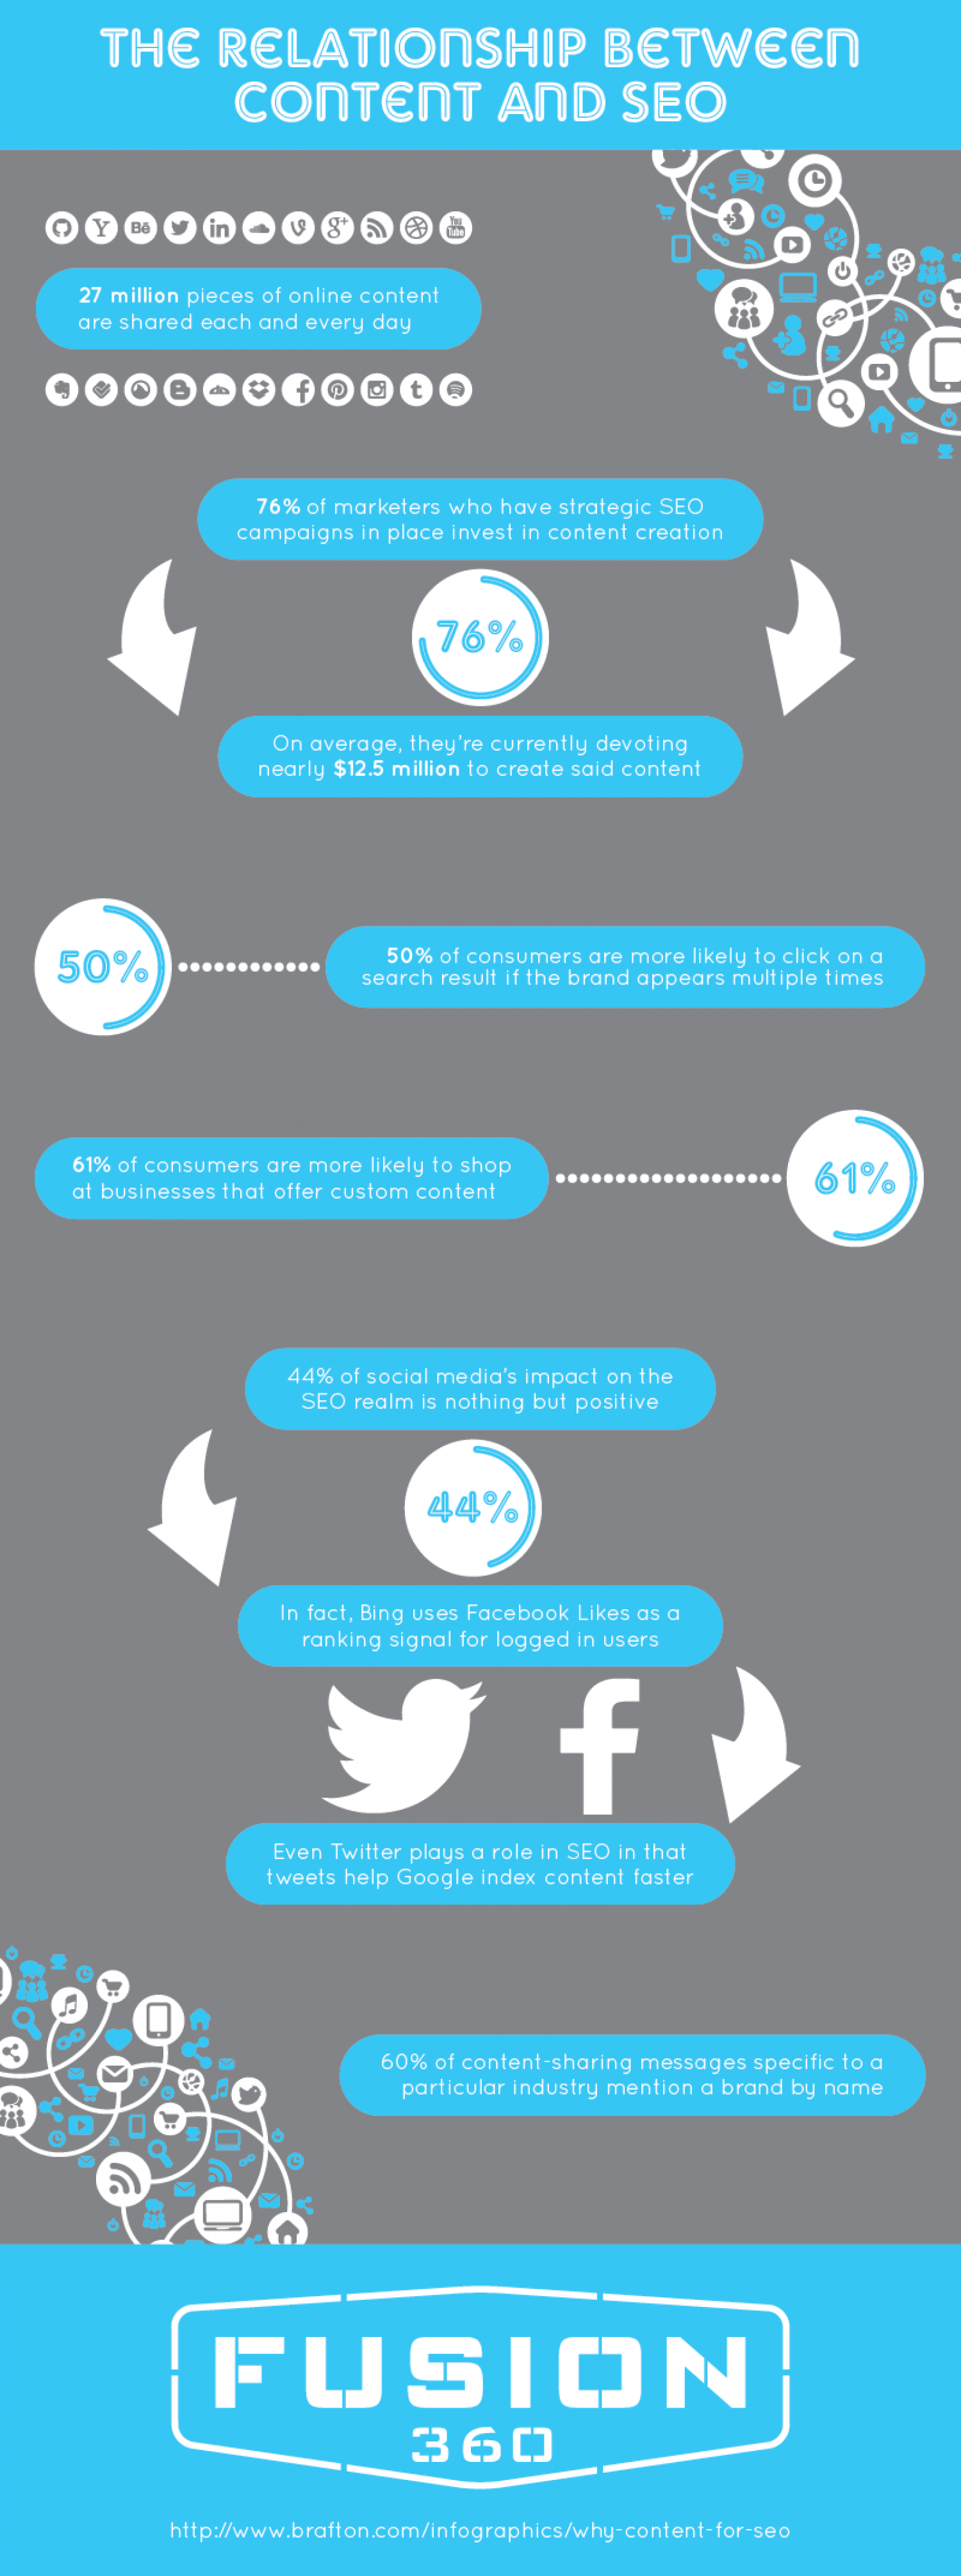 The Relationship Between Content and SEO Infographic